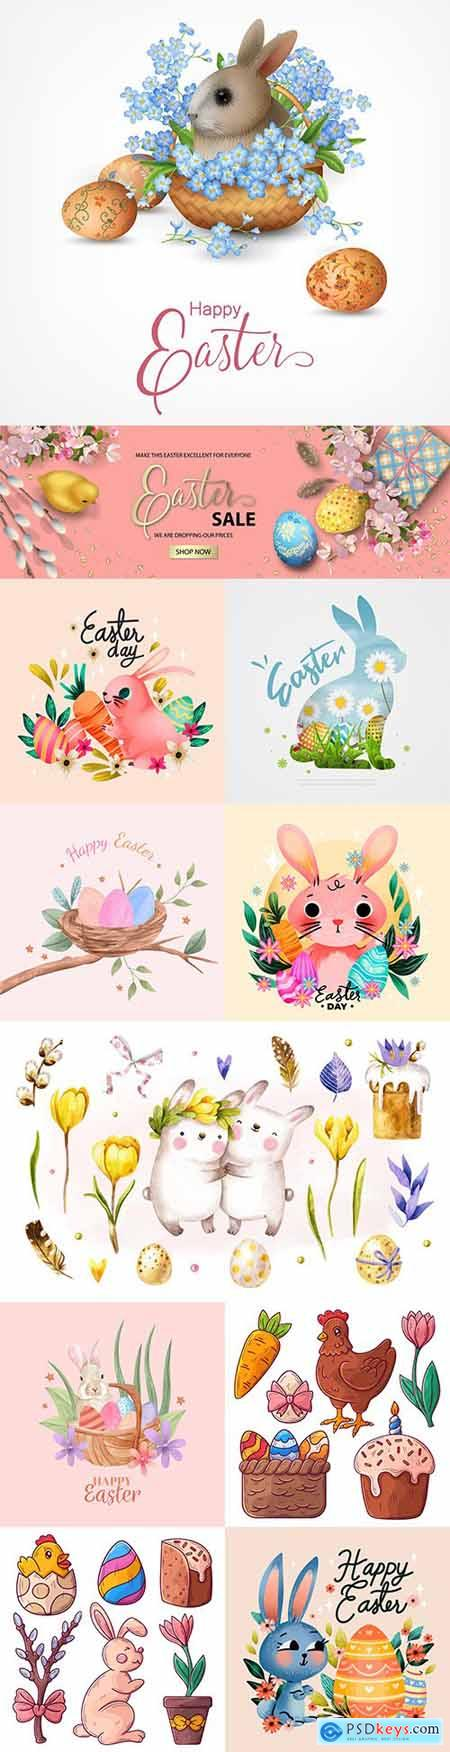 Happy Easter collection of watercolor elements with rabbits